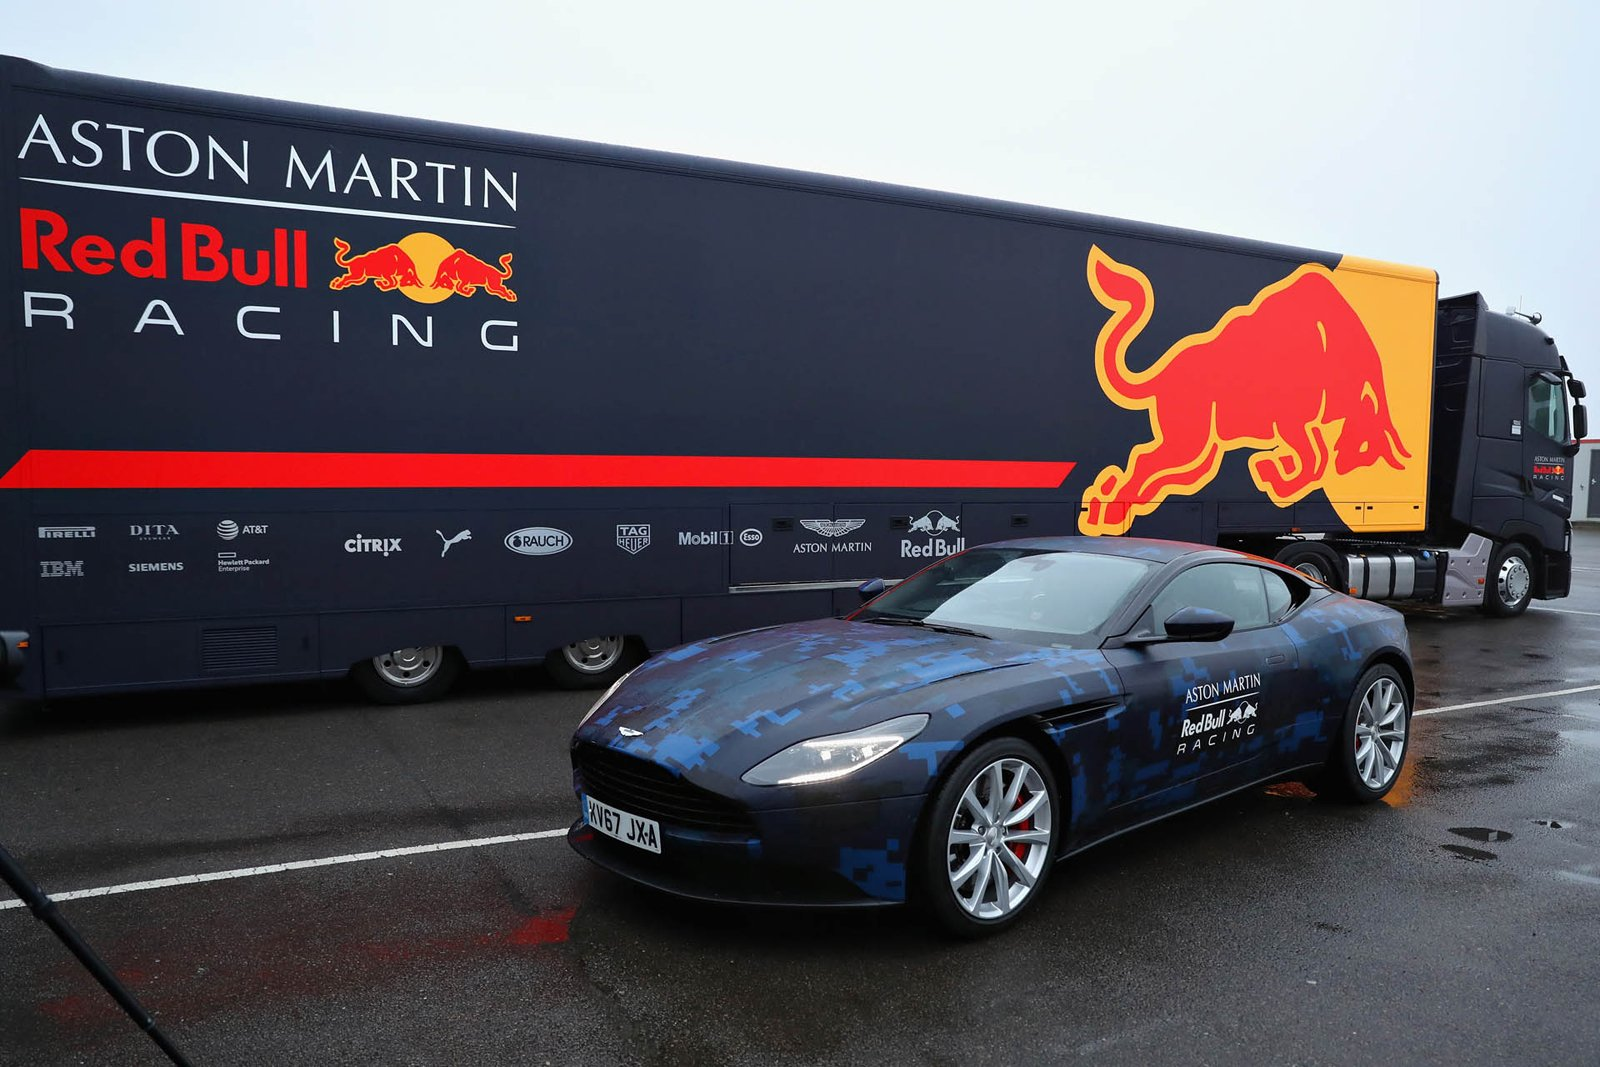 Aston Martin Db11 Looks Even Better In Red Bull Test Scheme